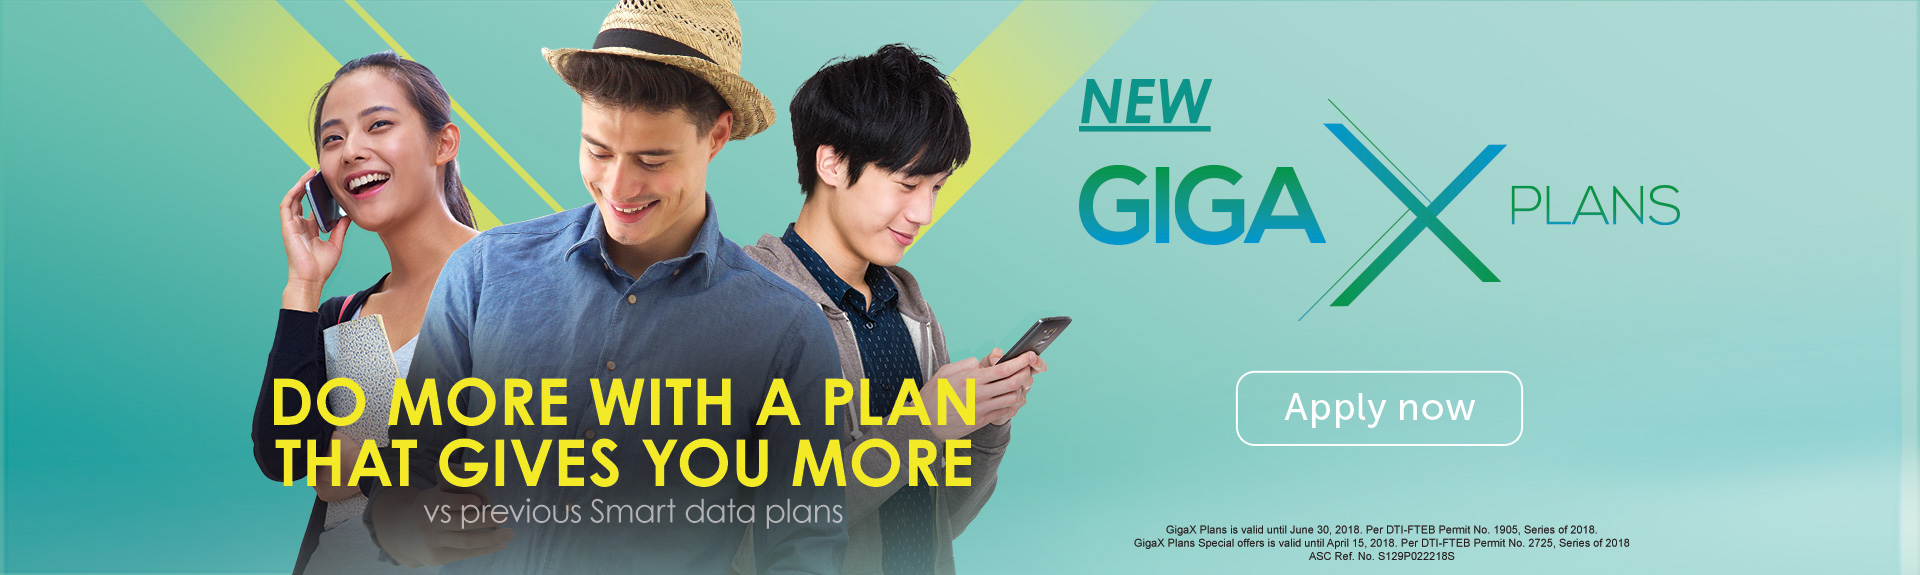 Get the Best Phone Plan with more Data